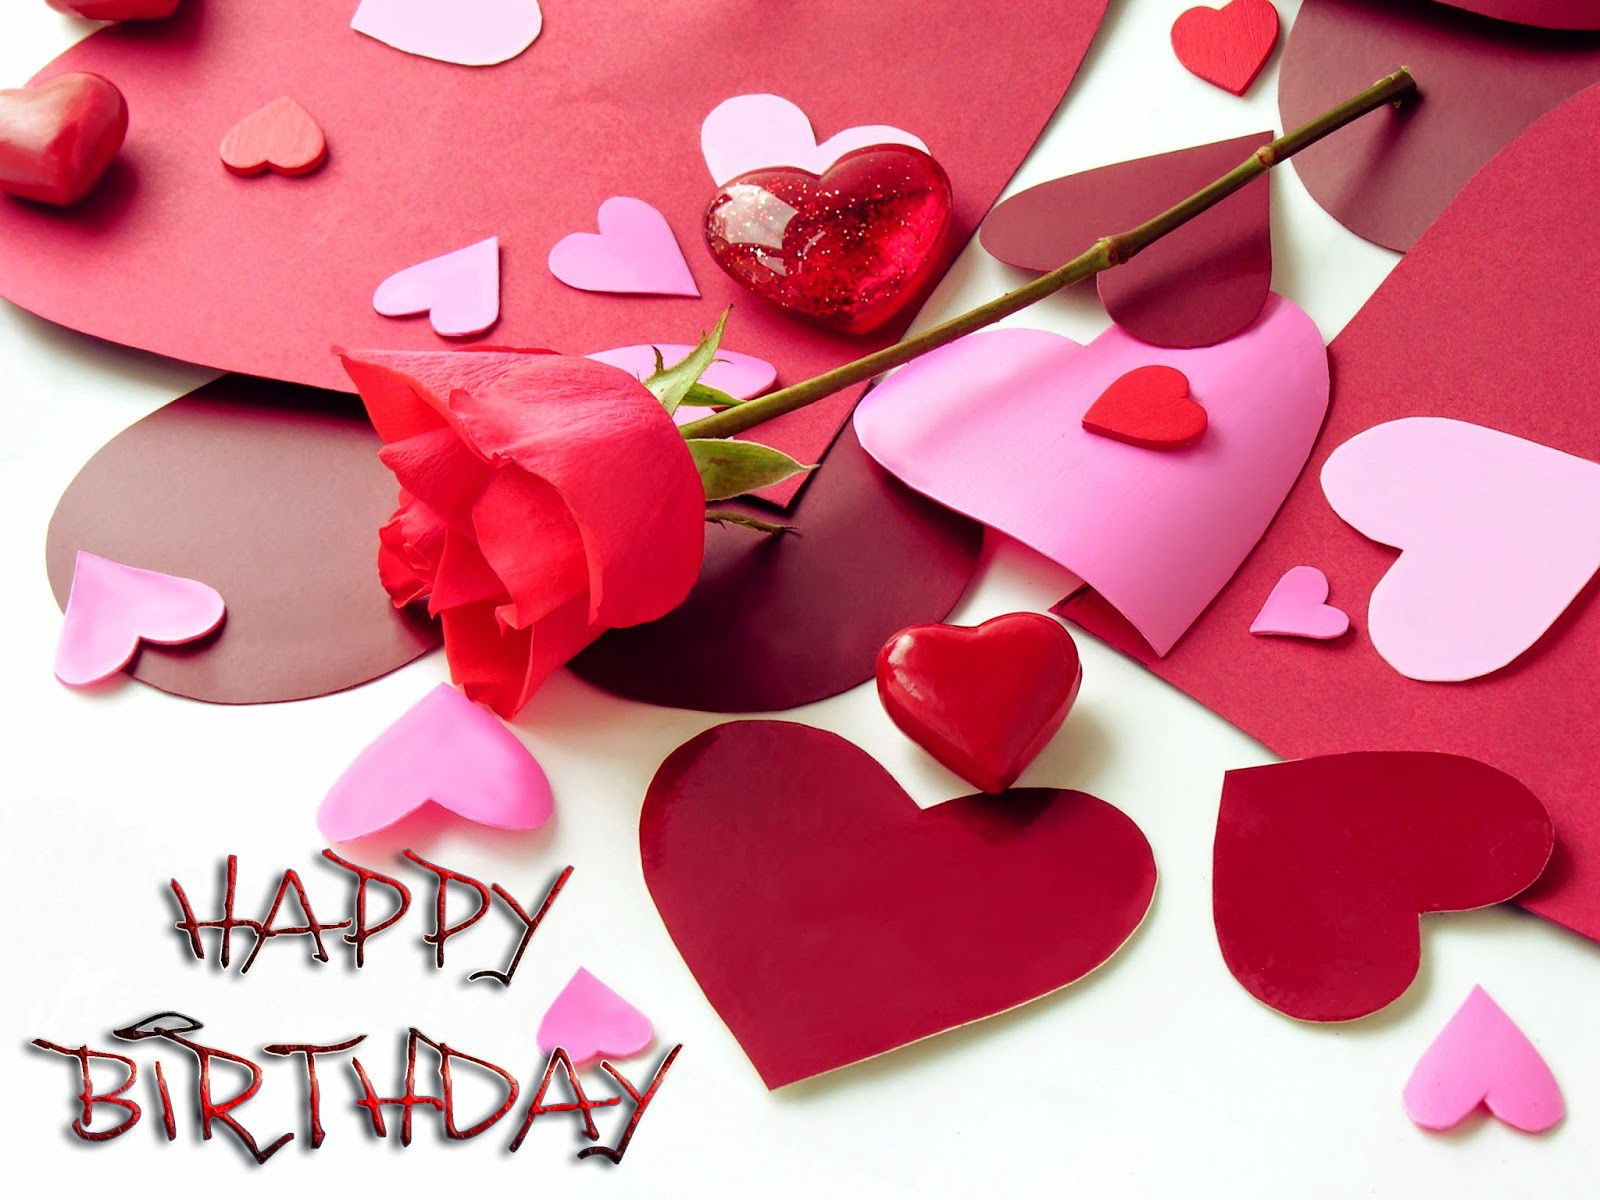 Best happy birthday wishes to send someone special quotesms medium are you looking for some impressive birthday wishes quotes and messages hearty and amazing happy birthday wishes for individuals of all age groups can be m4hsunfo